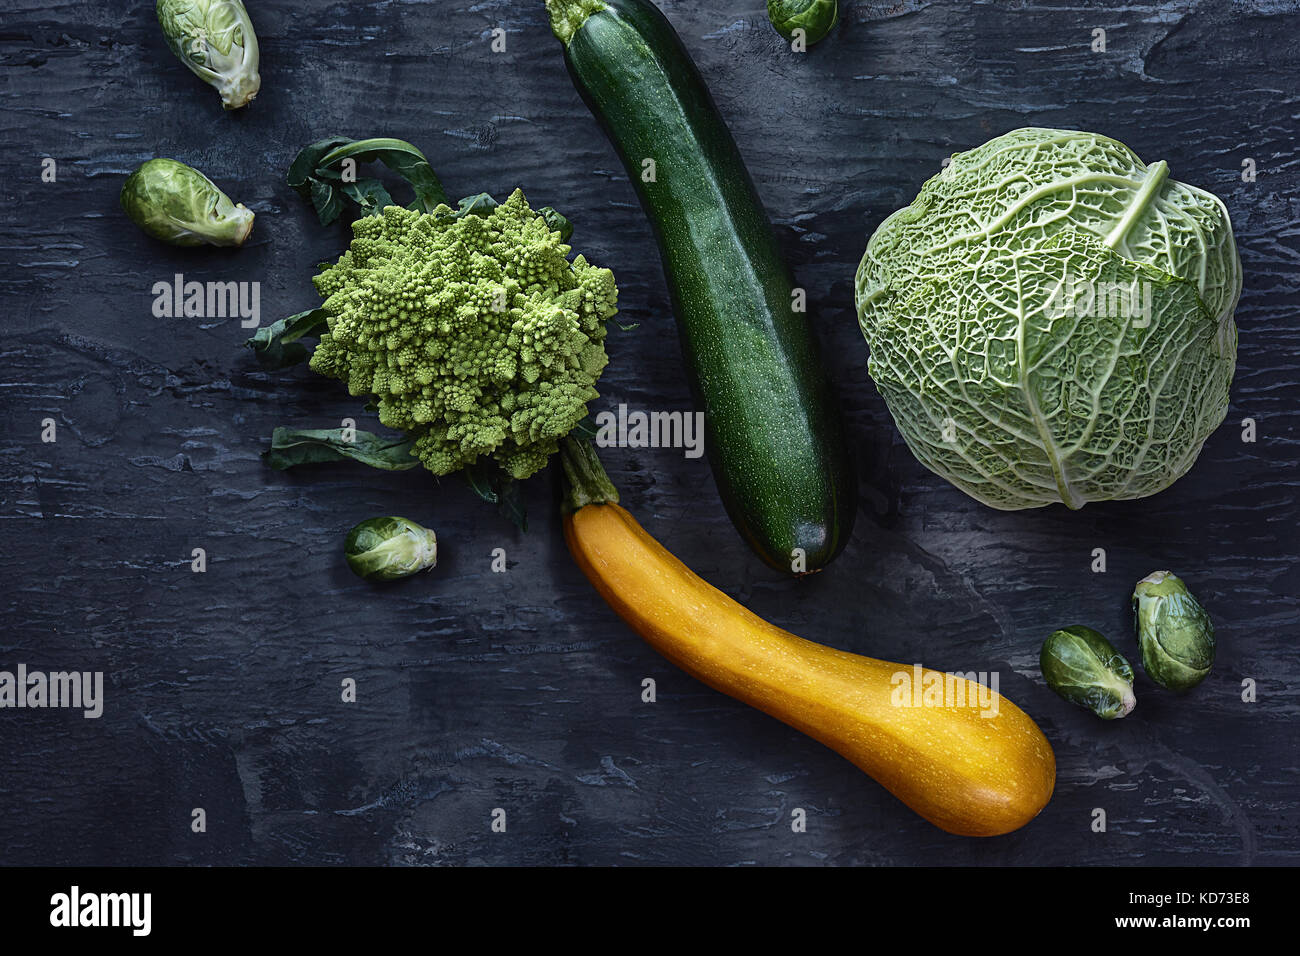 Organic vegetables on wooden table. Top view - Stock Image